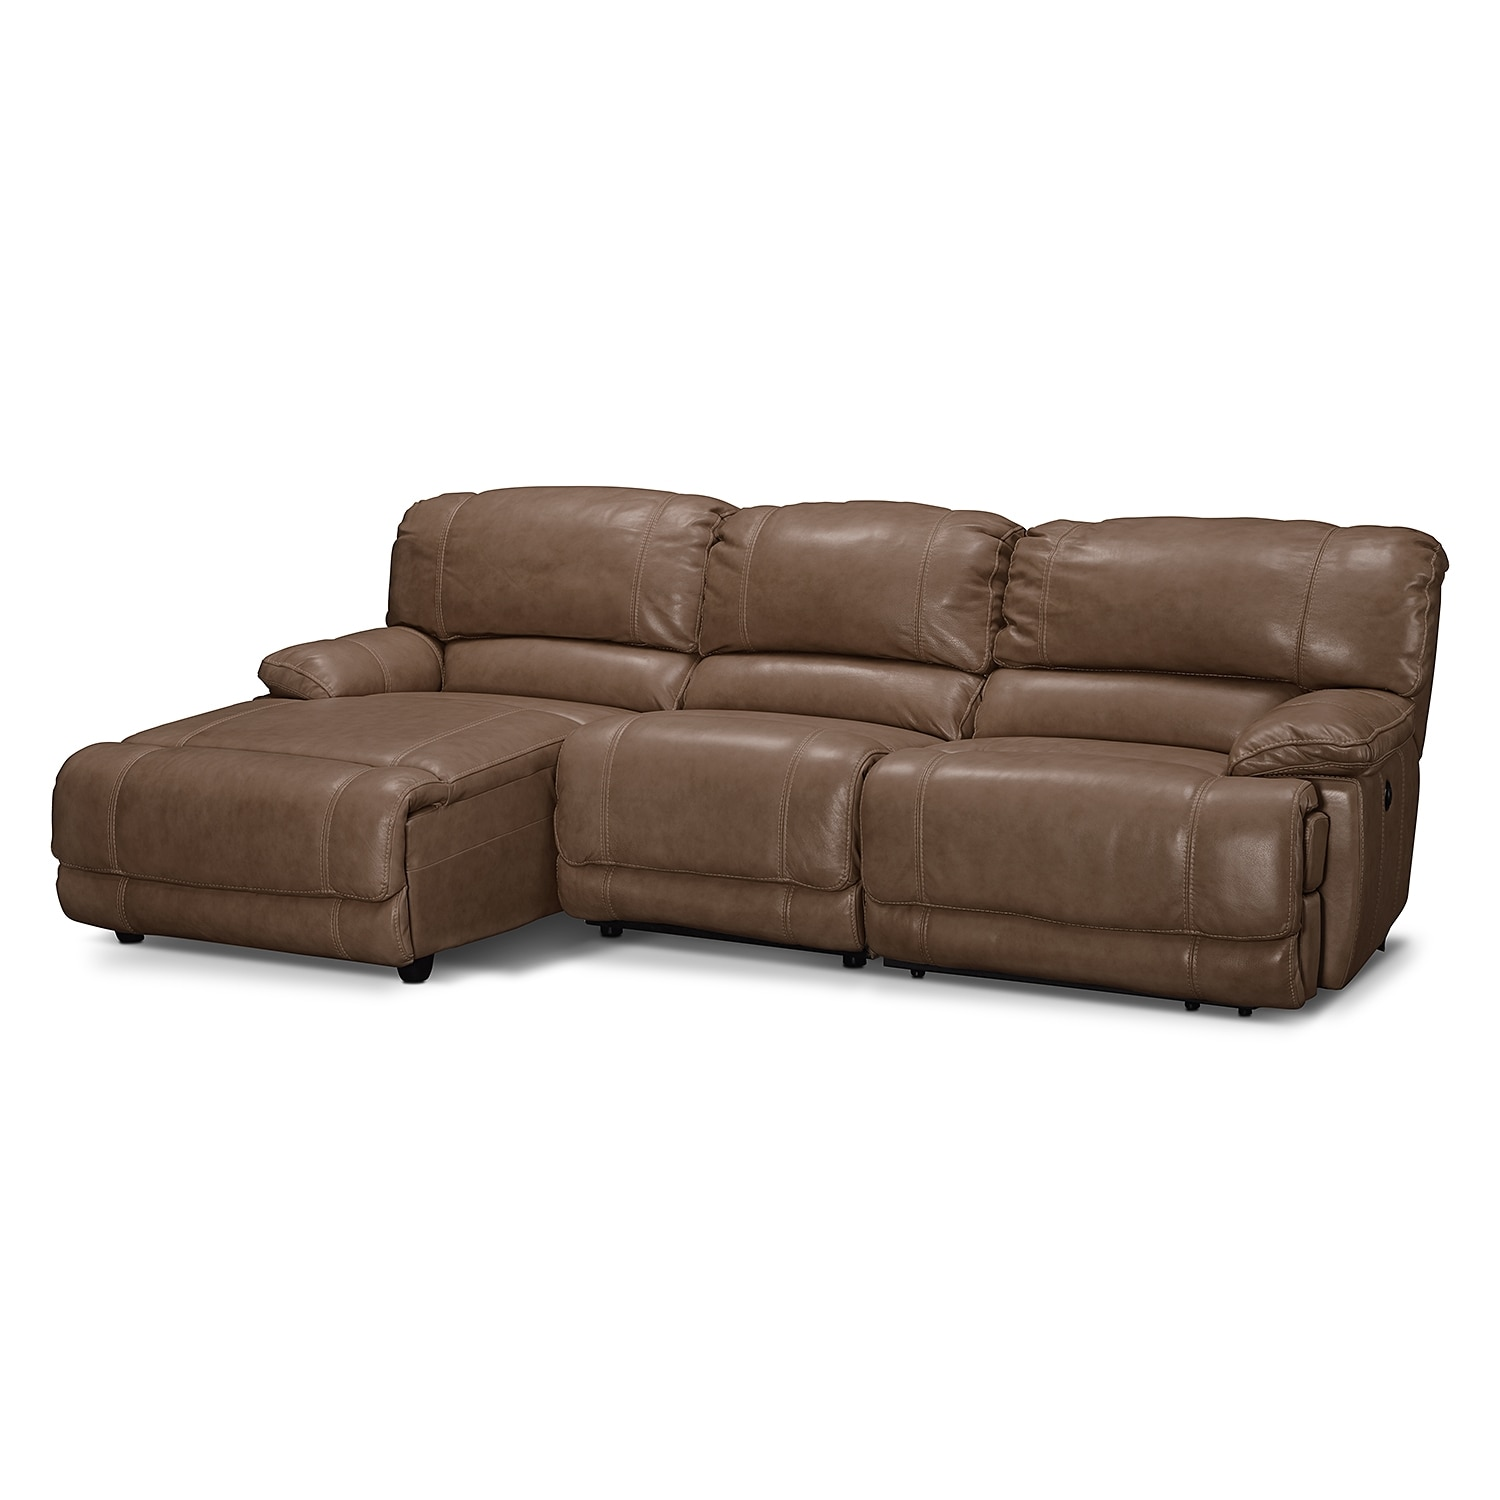 St malo 3 piece power reclining sectional with left for Brighton taupe 3 piece chaise and sofa set